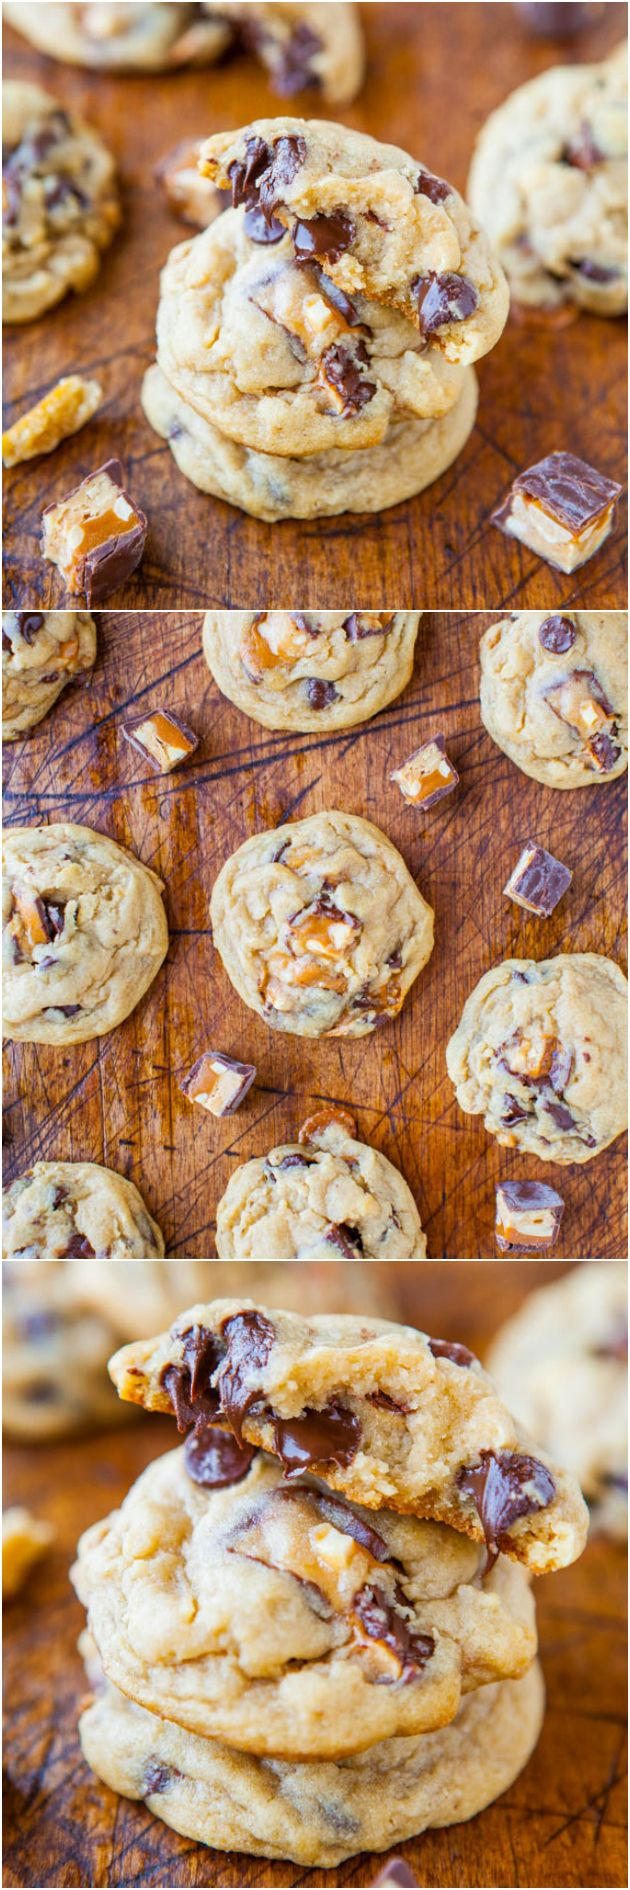 Soft and Chewy Snickers Chocolate Chip Cookies - The classic candy bar just got better because it's baked into soft, chewy cookies packed with chocolate chips! Easy recipe at averiecooks.com